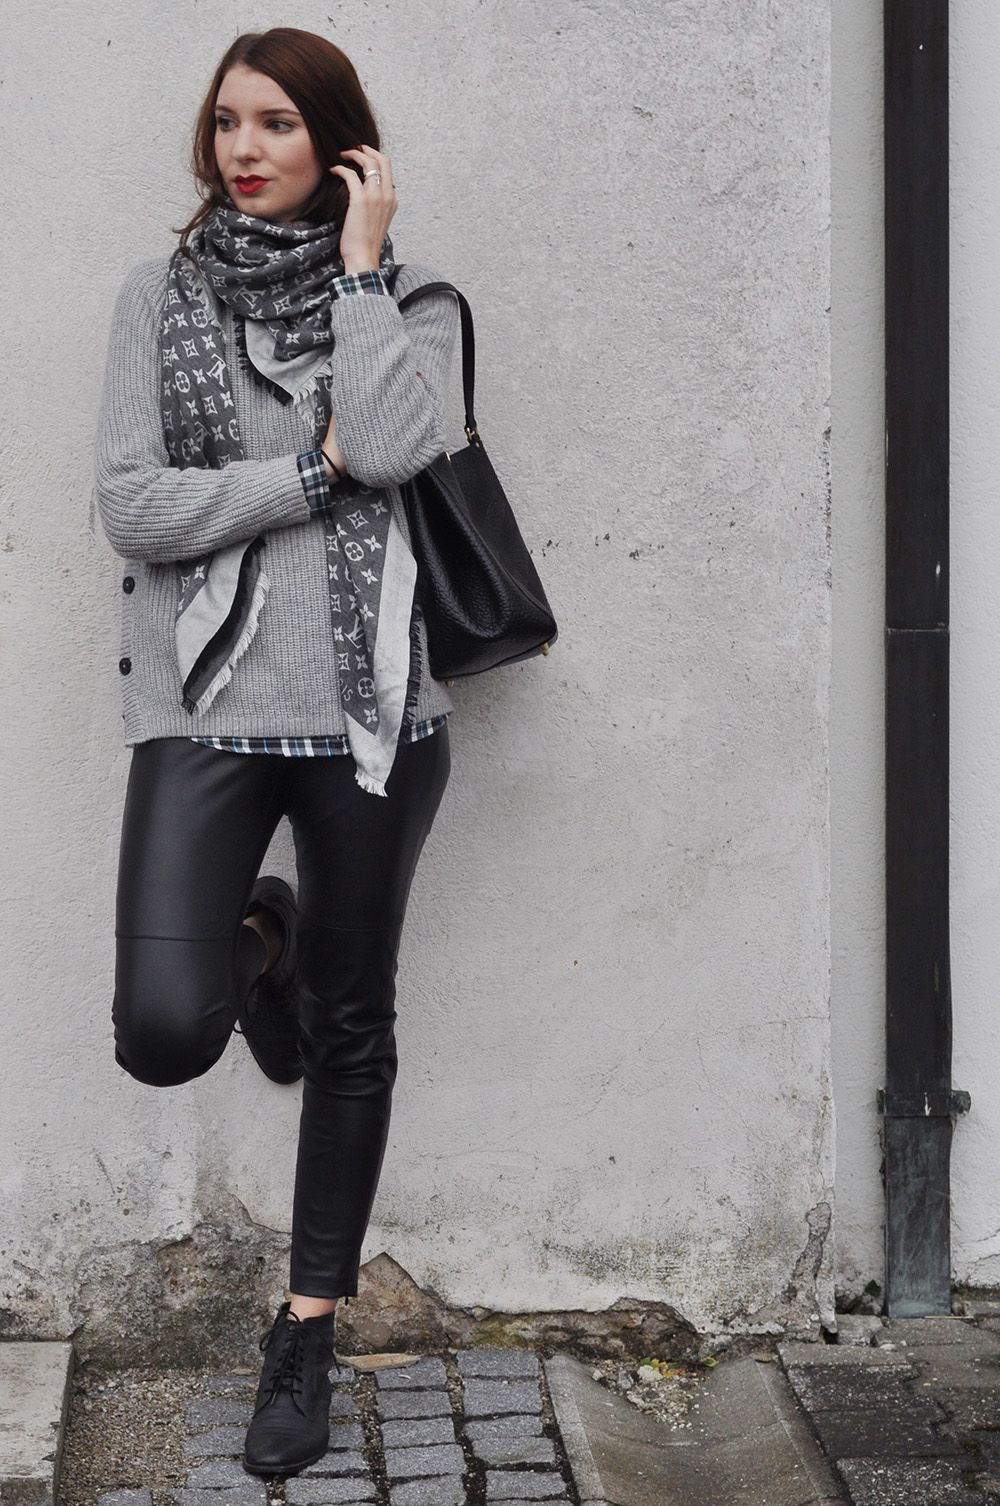 OUTFIT  GREY TURTLENECK PULLOVER AND PLAID SHIRT WITH LEATHER TROUSERS 24280e315581a